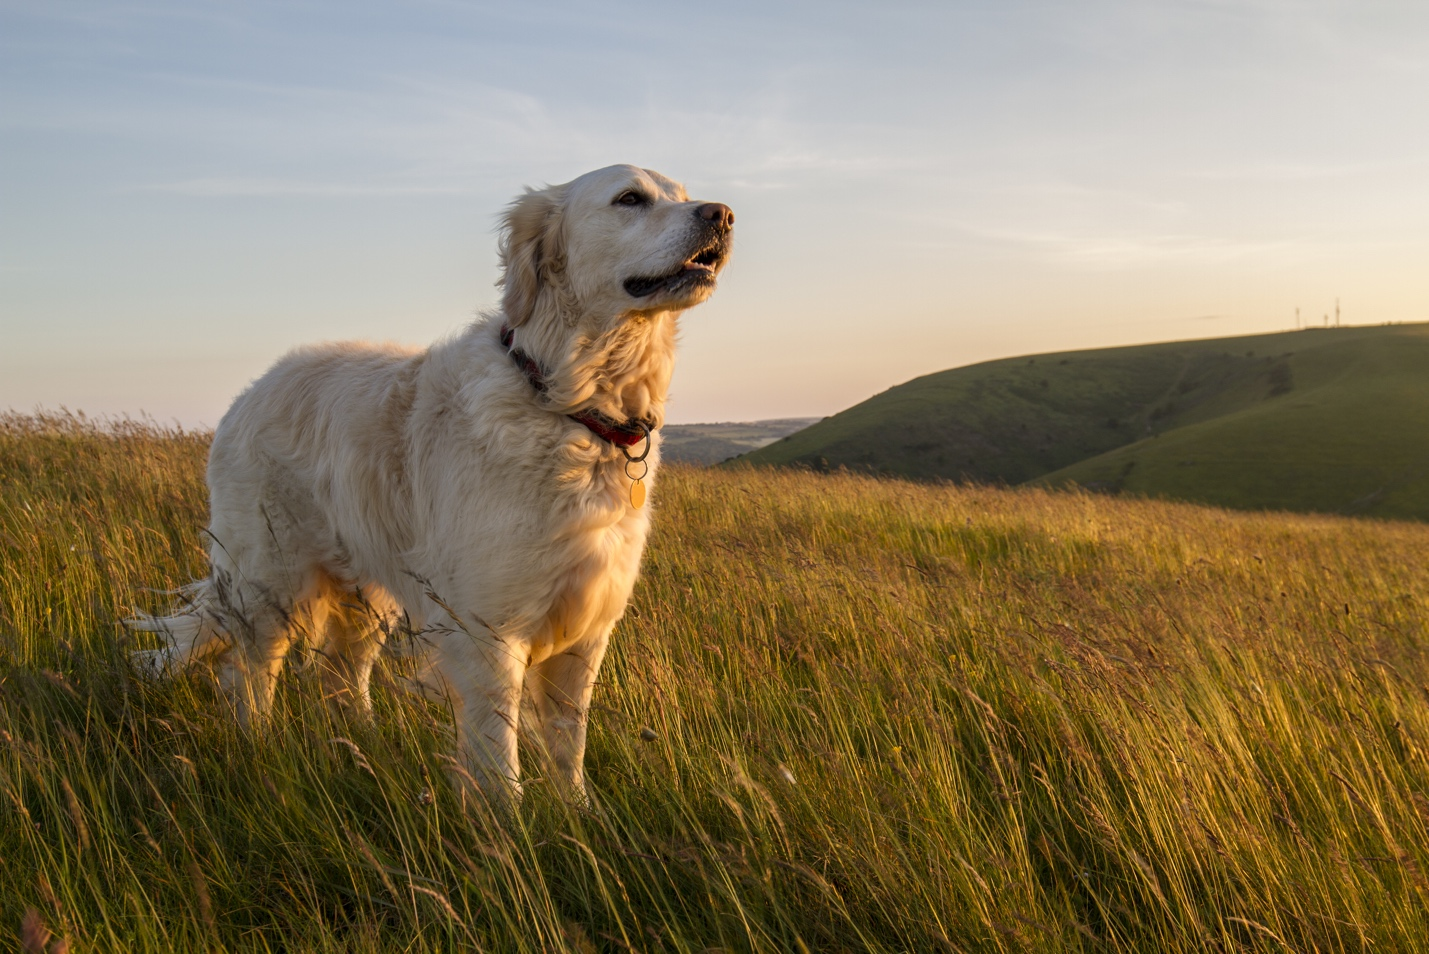 Dog standing in field